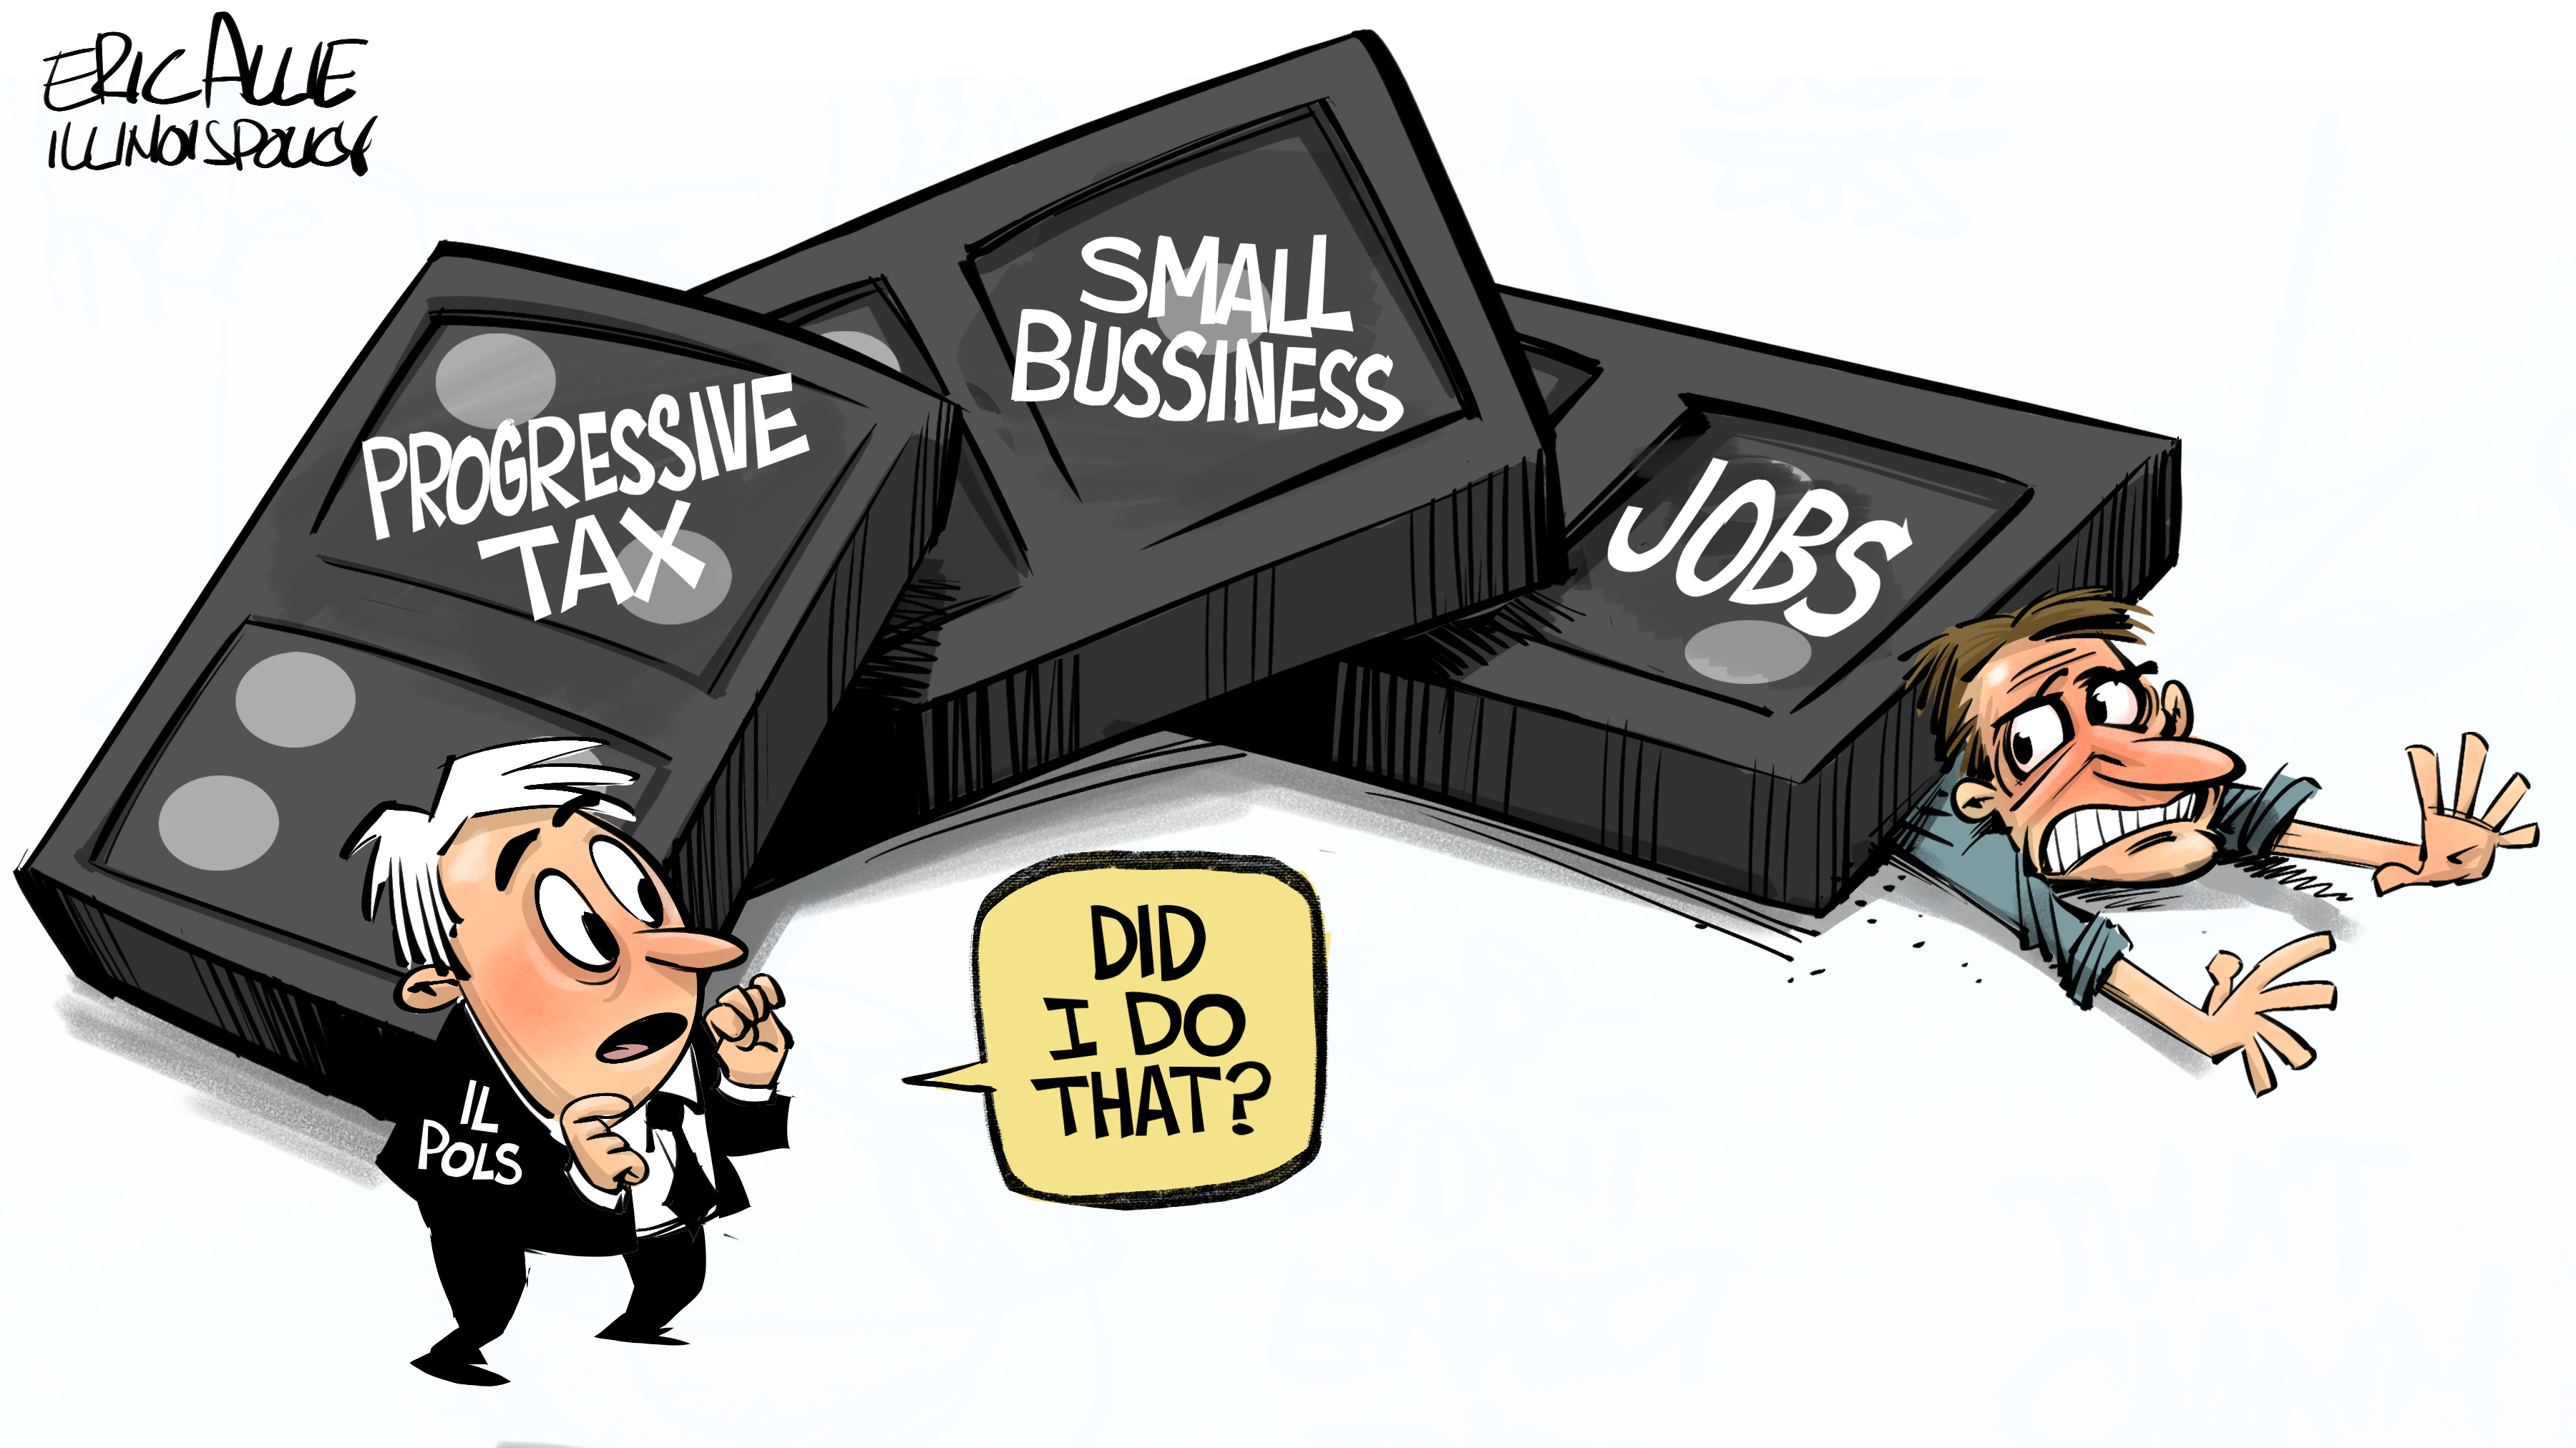 Progressive tax crushing small business and jobs